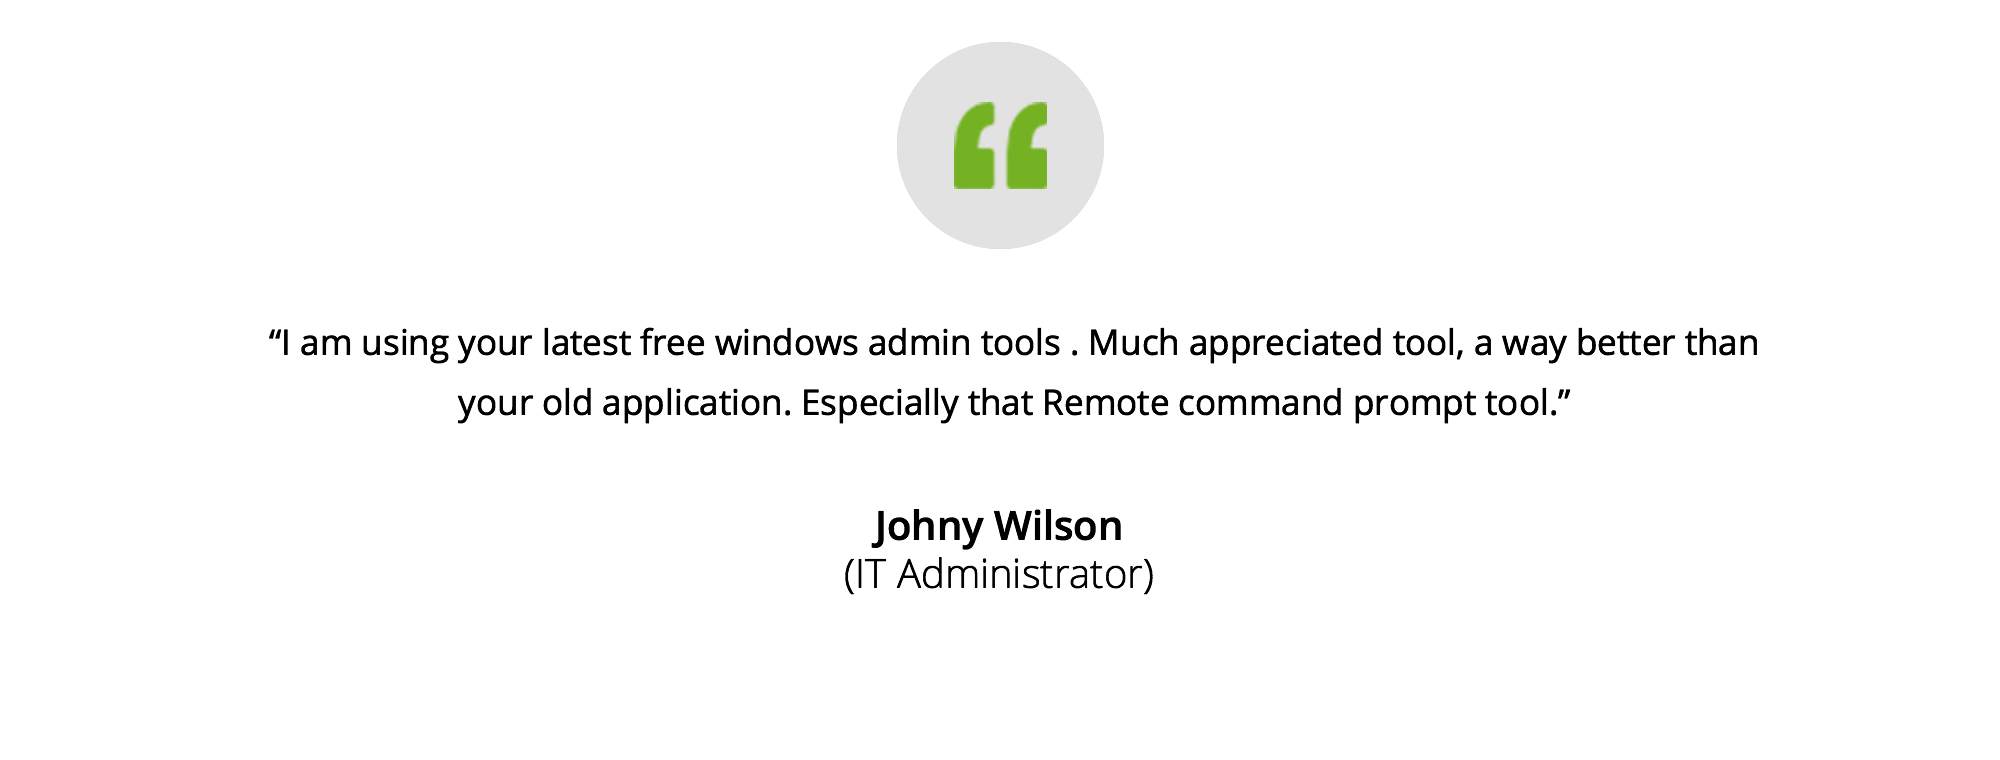 Johny Wilson's testimonial on windows tools